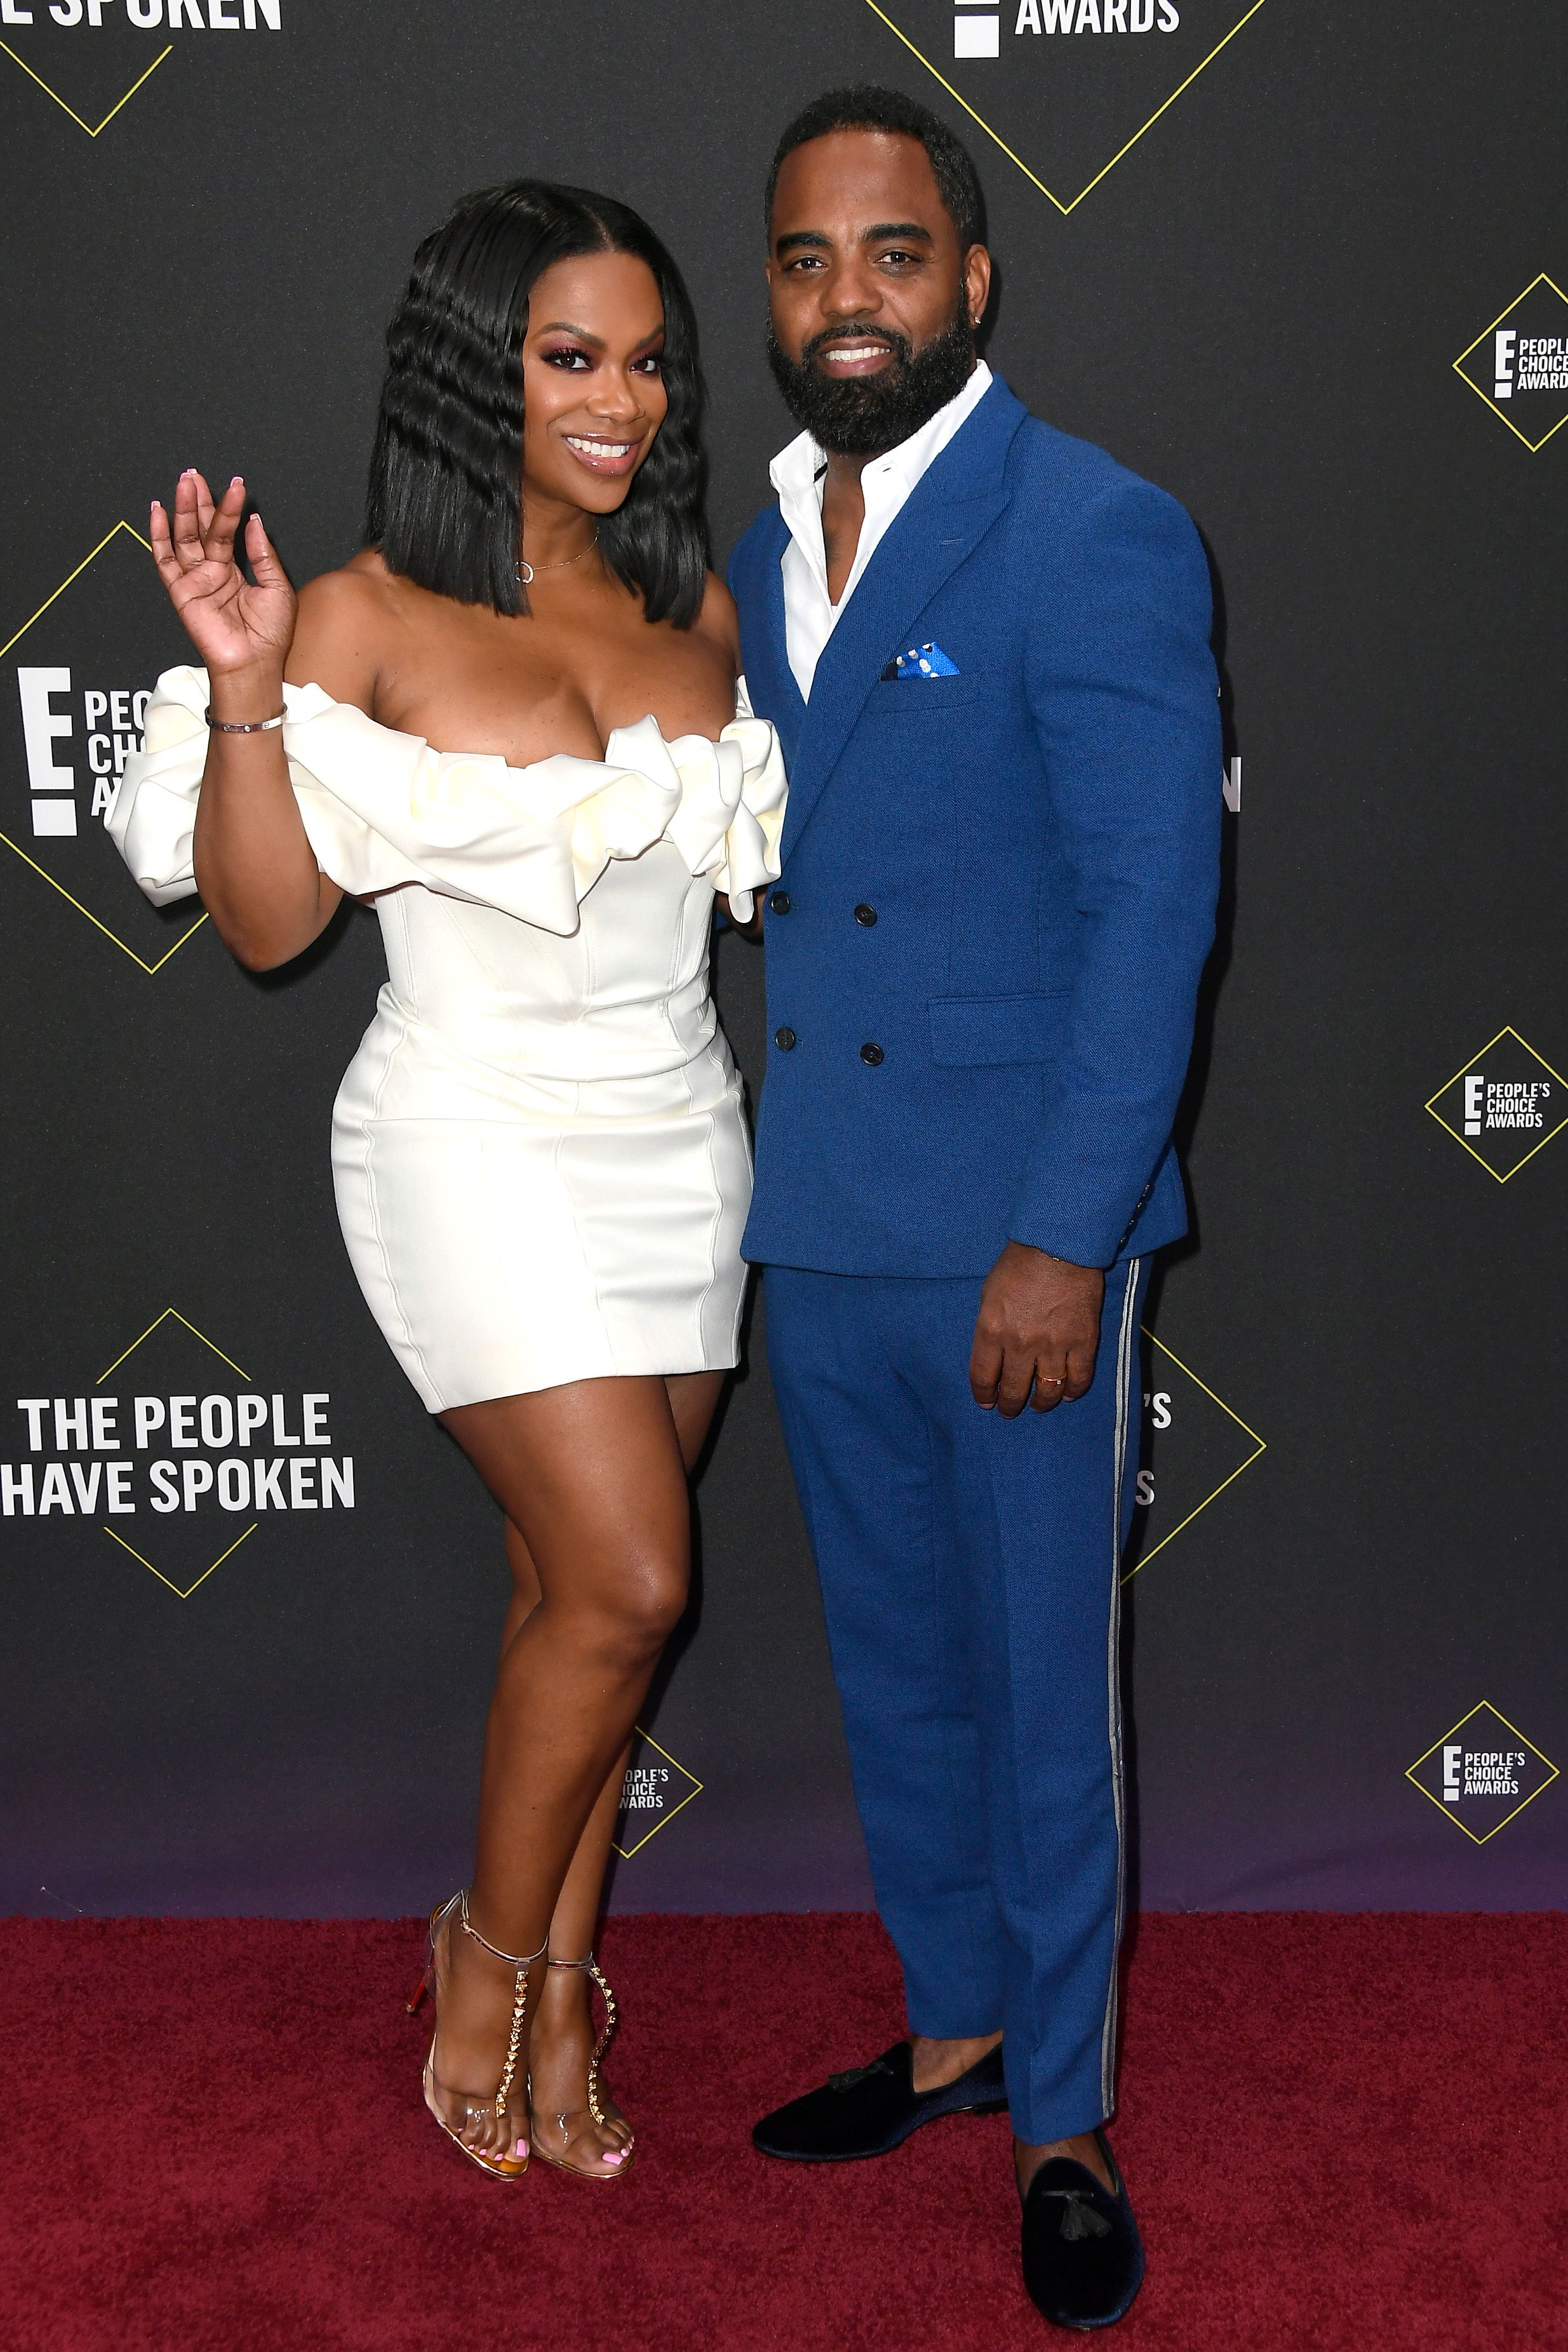 Kandi Burruss and Todd Burruss at the 2019 E! People's Choice Awards at Barker Hangar on November 10, 2019. | Photo: Getty Images